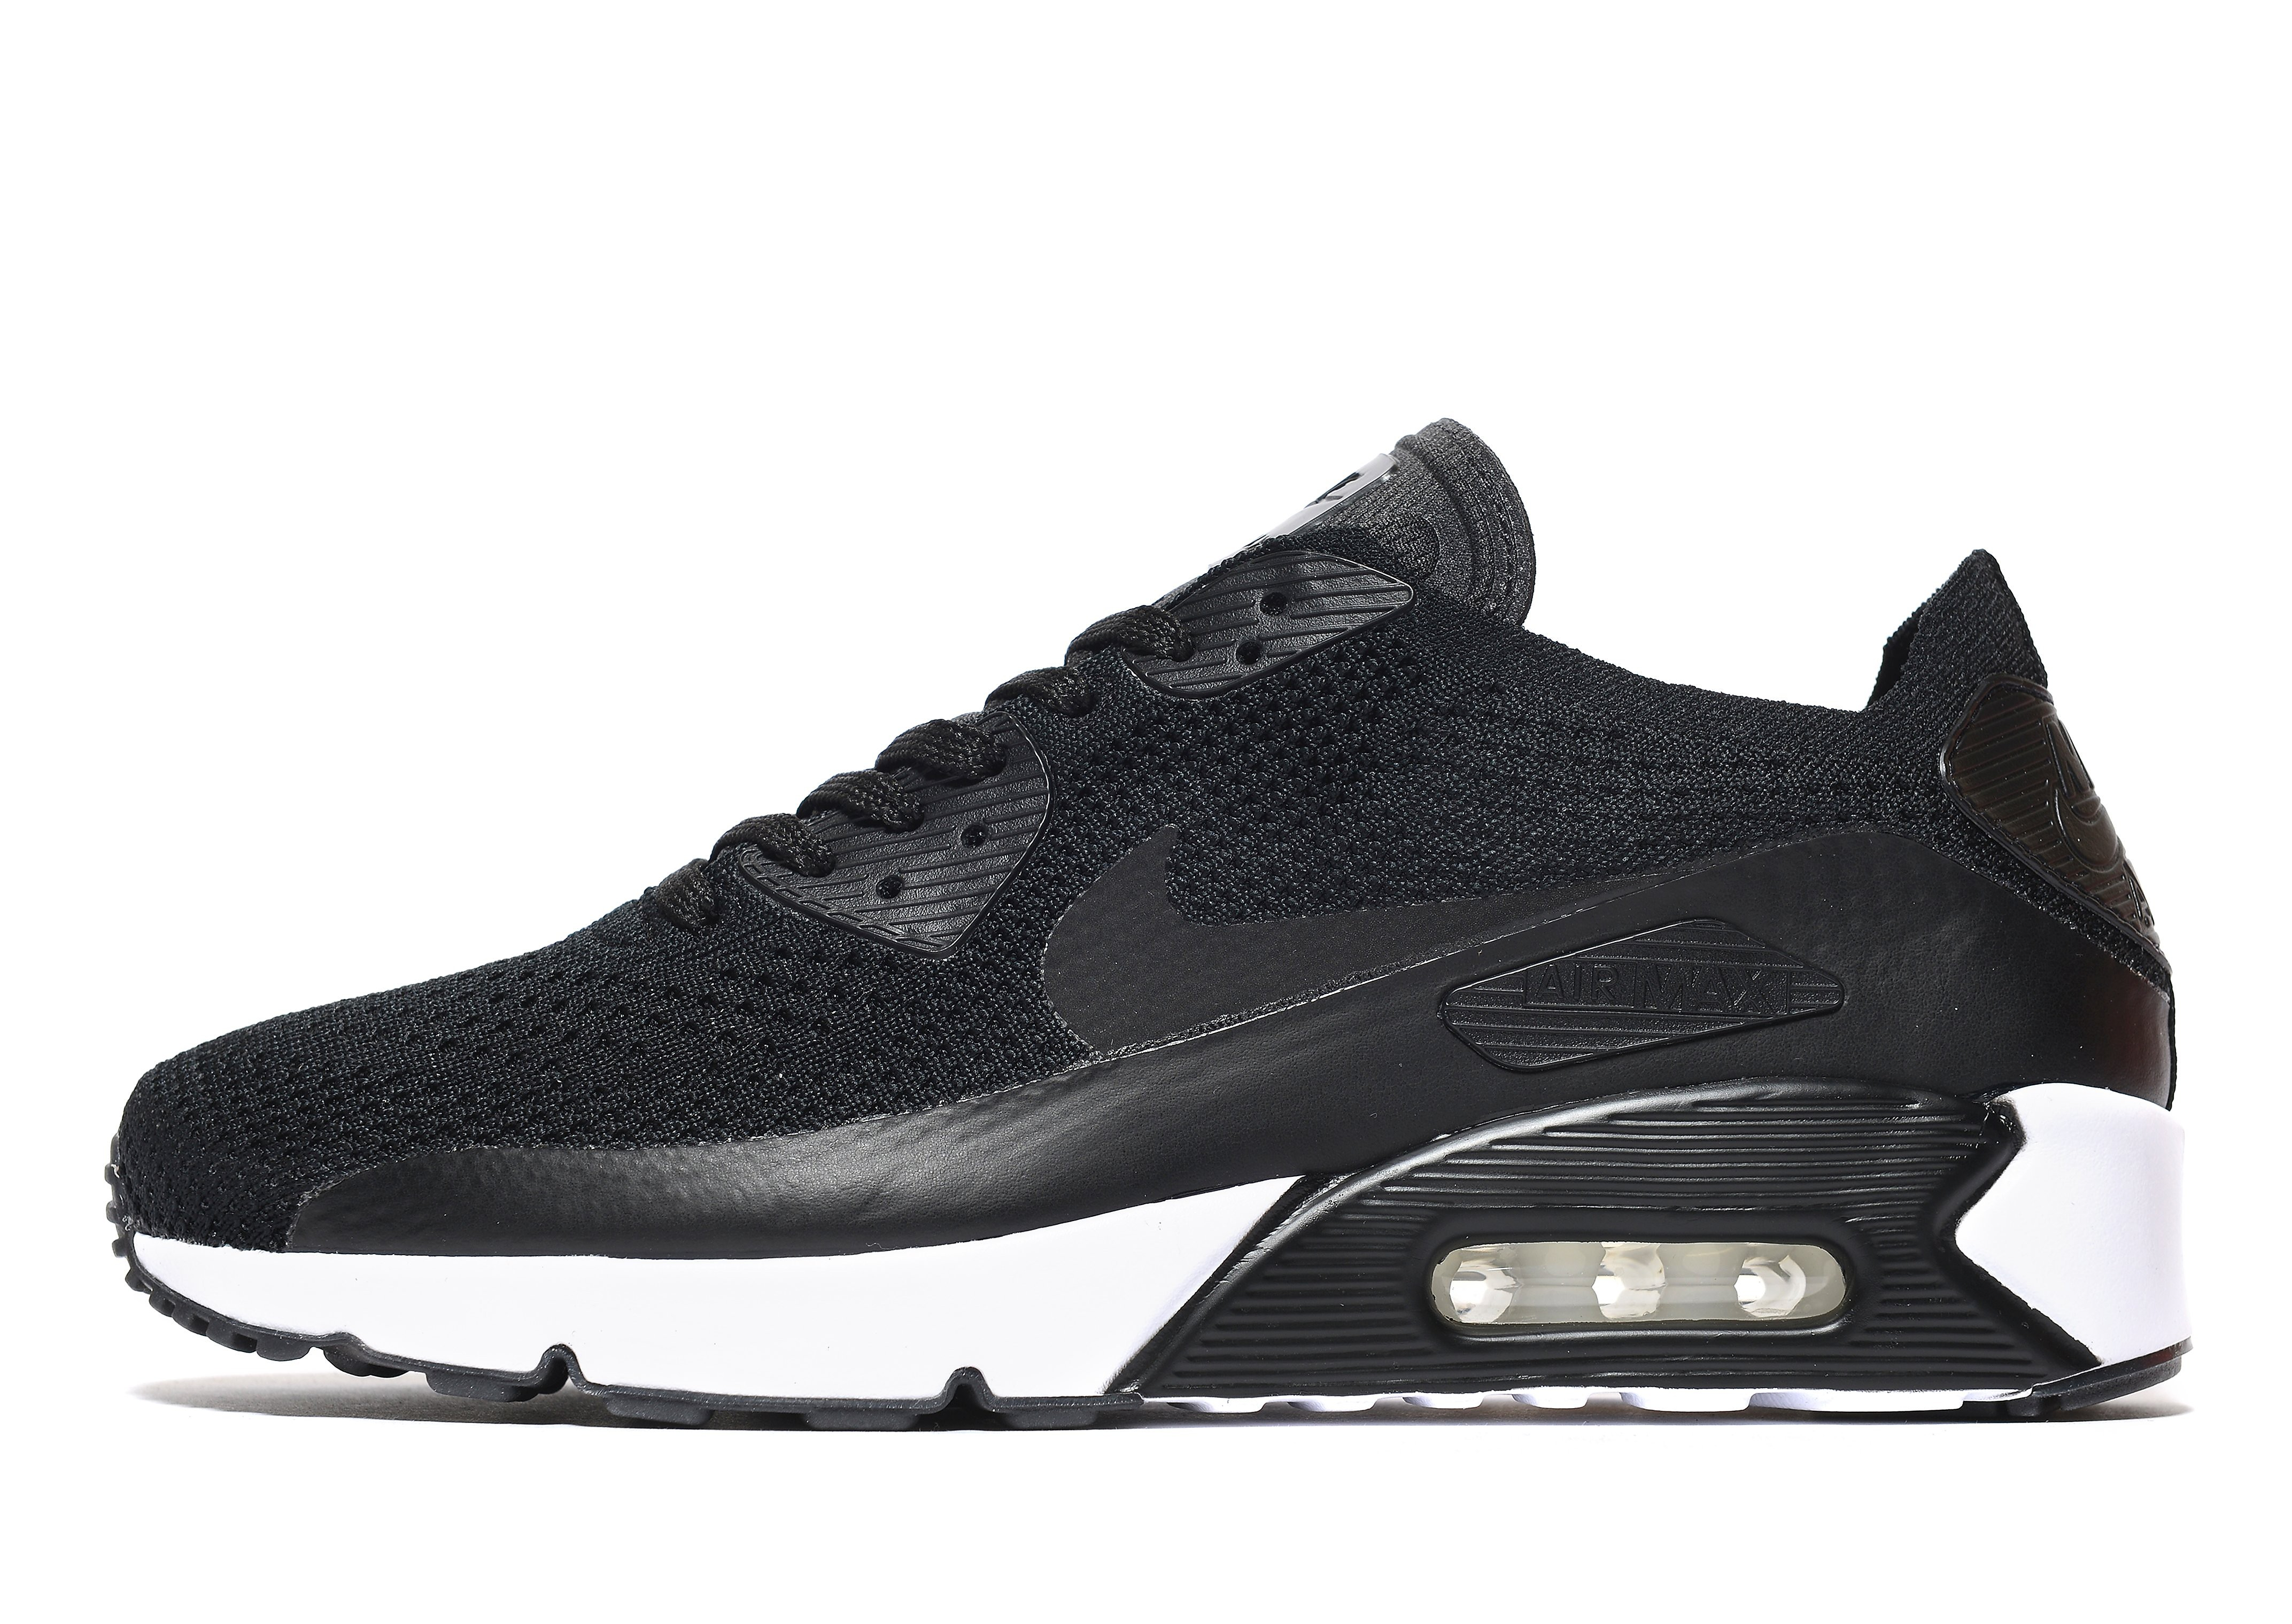 Nike Air Max 90 Ultra 2.0 Flyknit